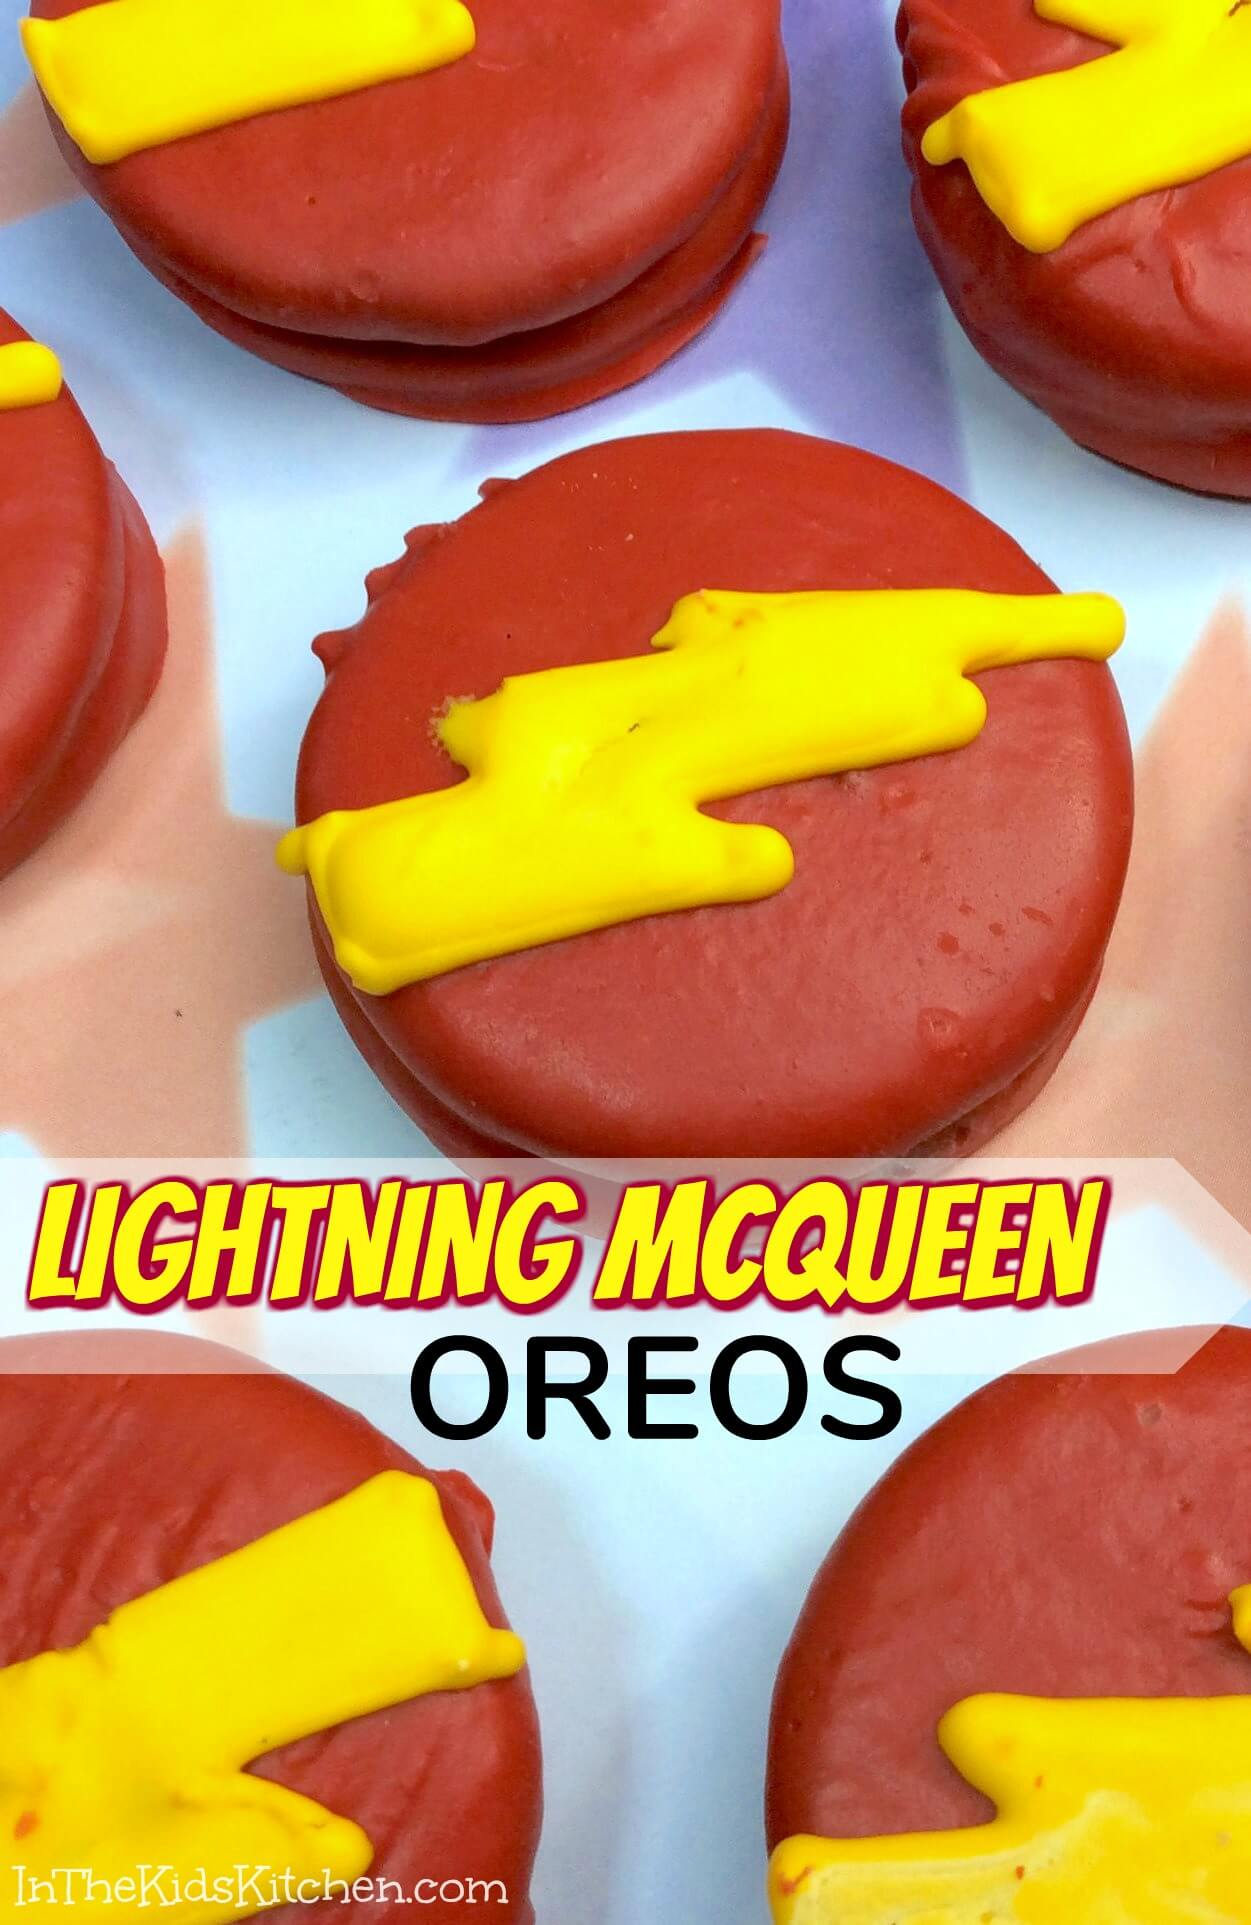 Lightning Mcqueen Oreos Inspired By Disney Cars In The